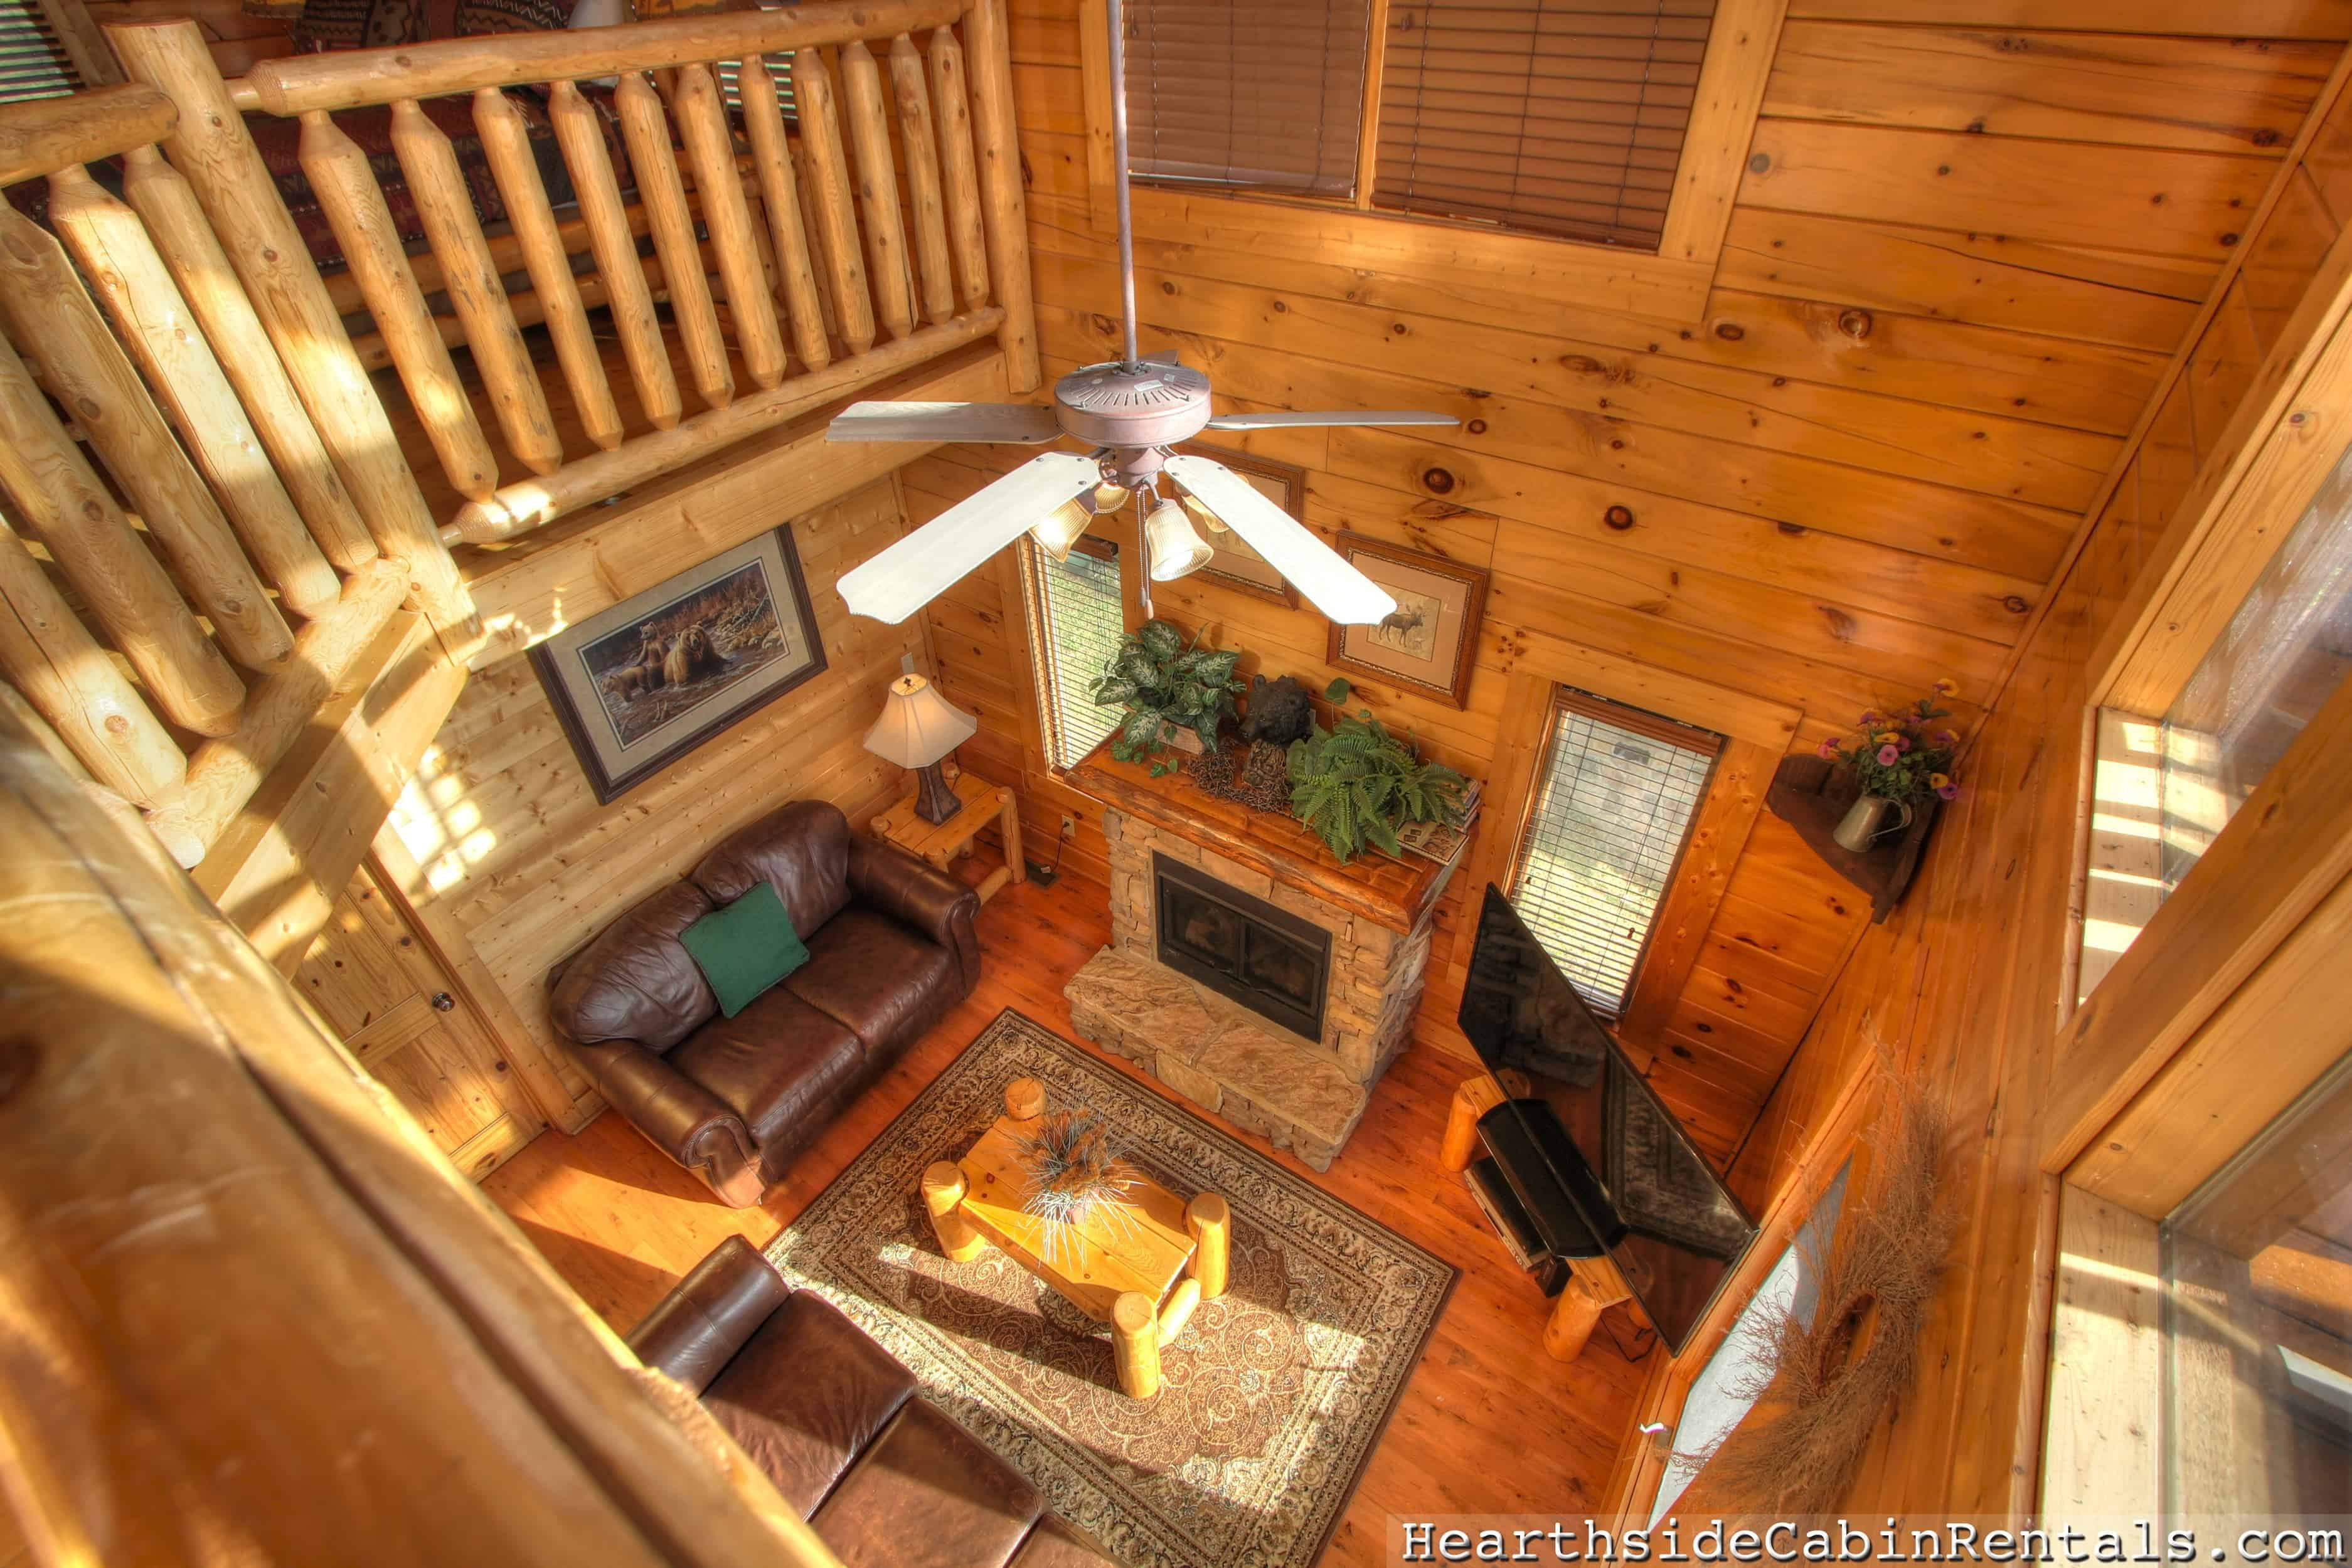 Find a Cabin Hearthside at the Preserve